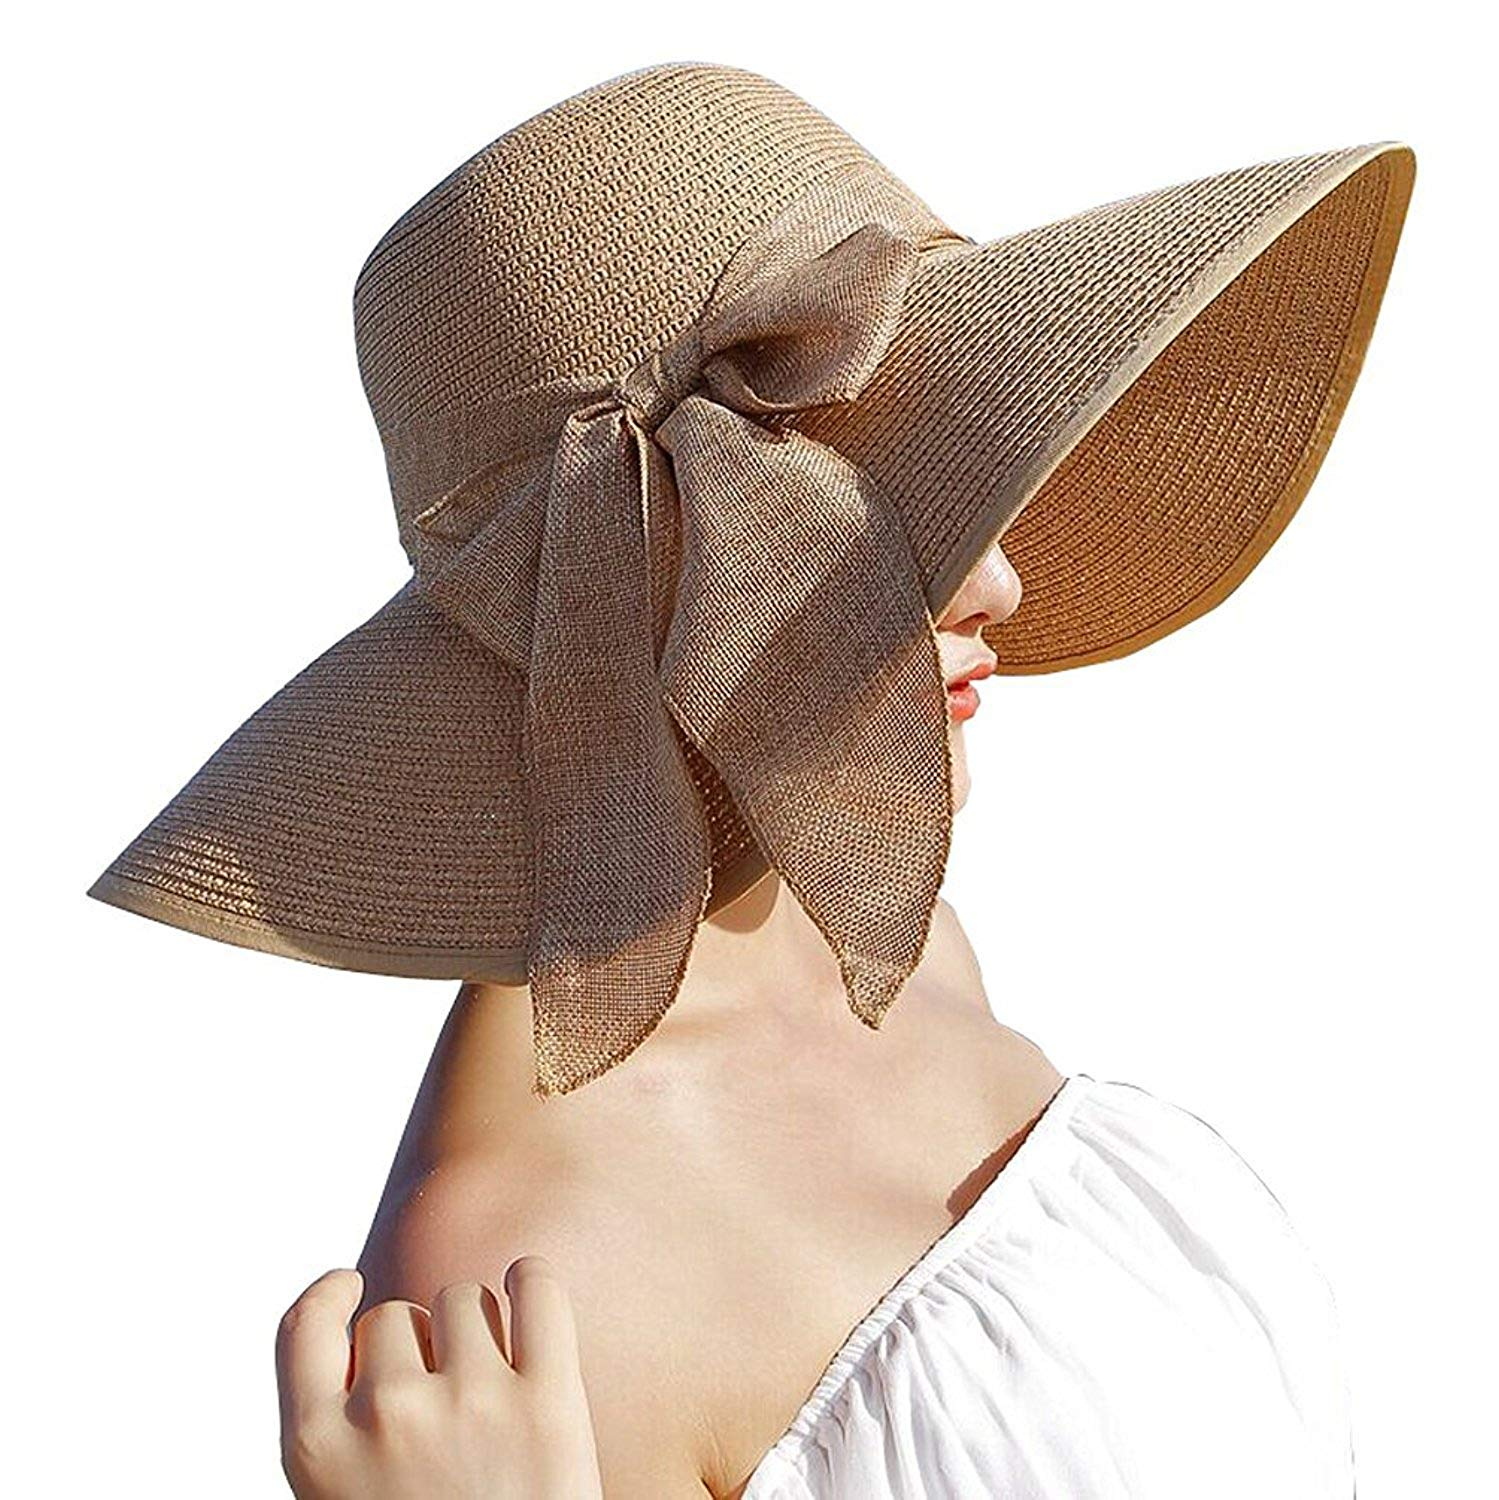 b11fa15d Get Quotations · Xuzirui Bowknot Casual Straw Women Summer Hats Big Wide  Brim Beach Hat